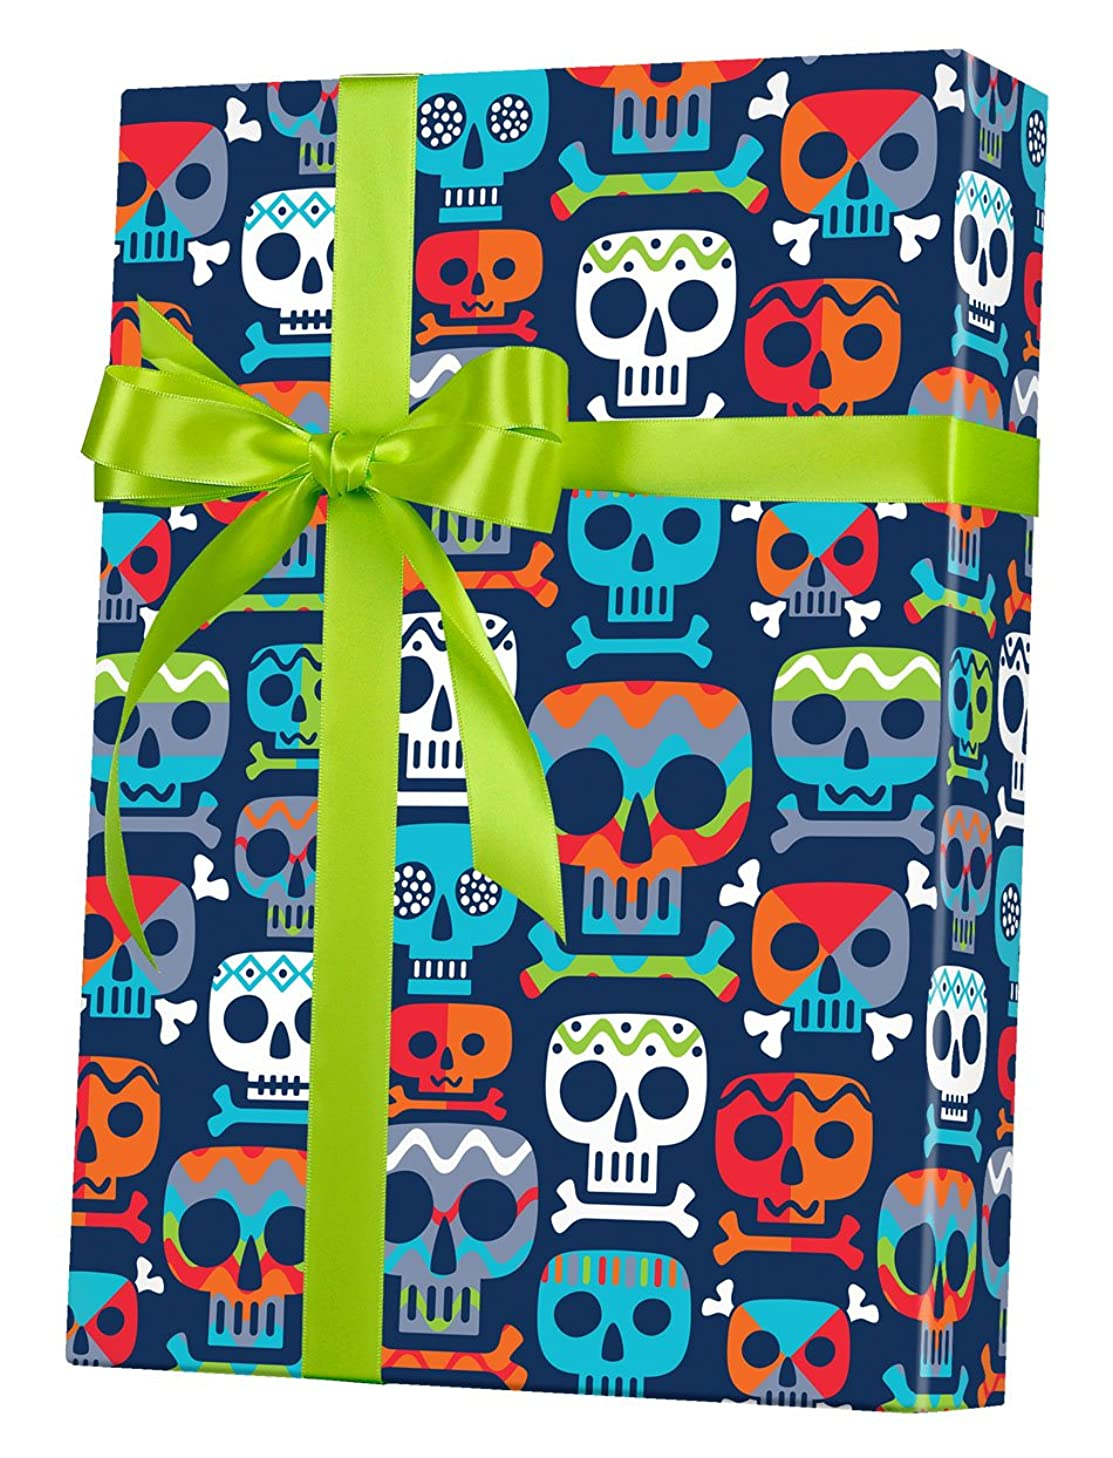 Skull Totem Reversible Rolled Gift Wrapping Paper - 24